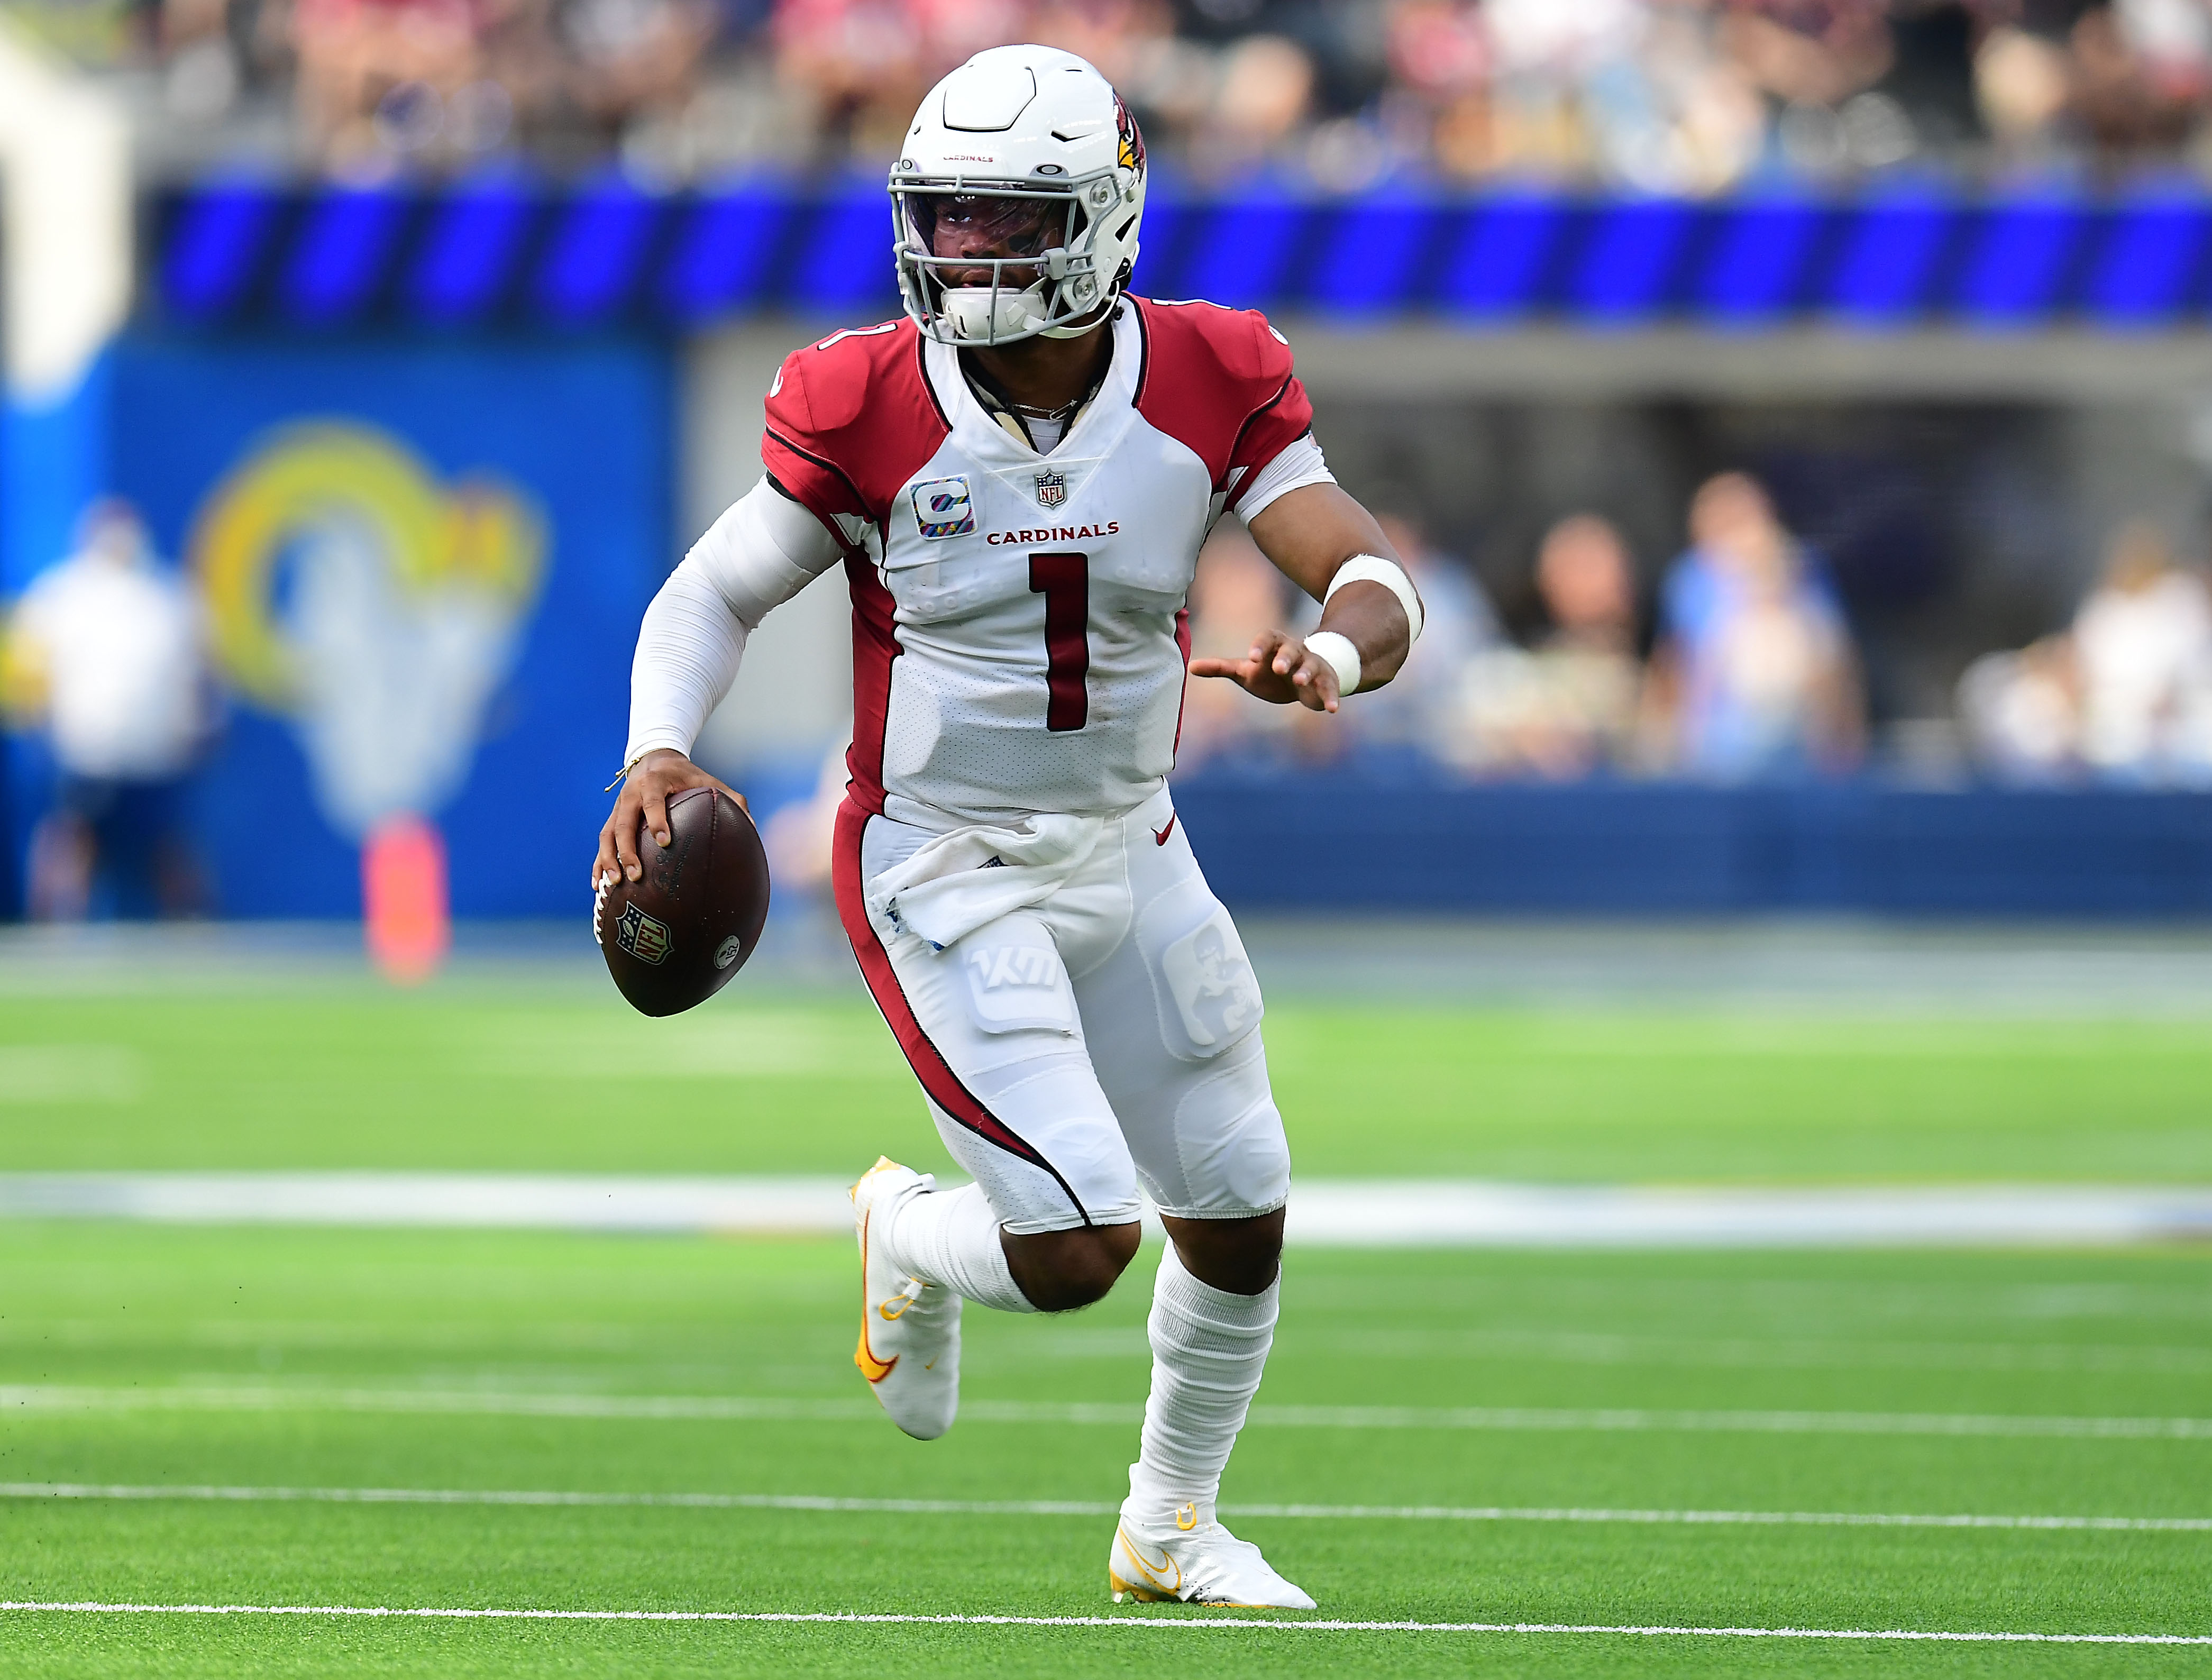 Arizona Cardinals quarterback Kyler Murray (1) moves out to pass against the Los Angeles Rams during the first half at SoFi Stadium.